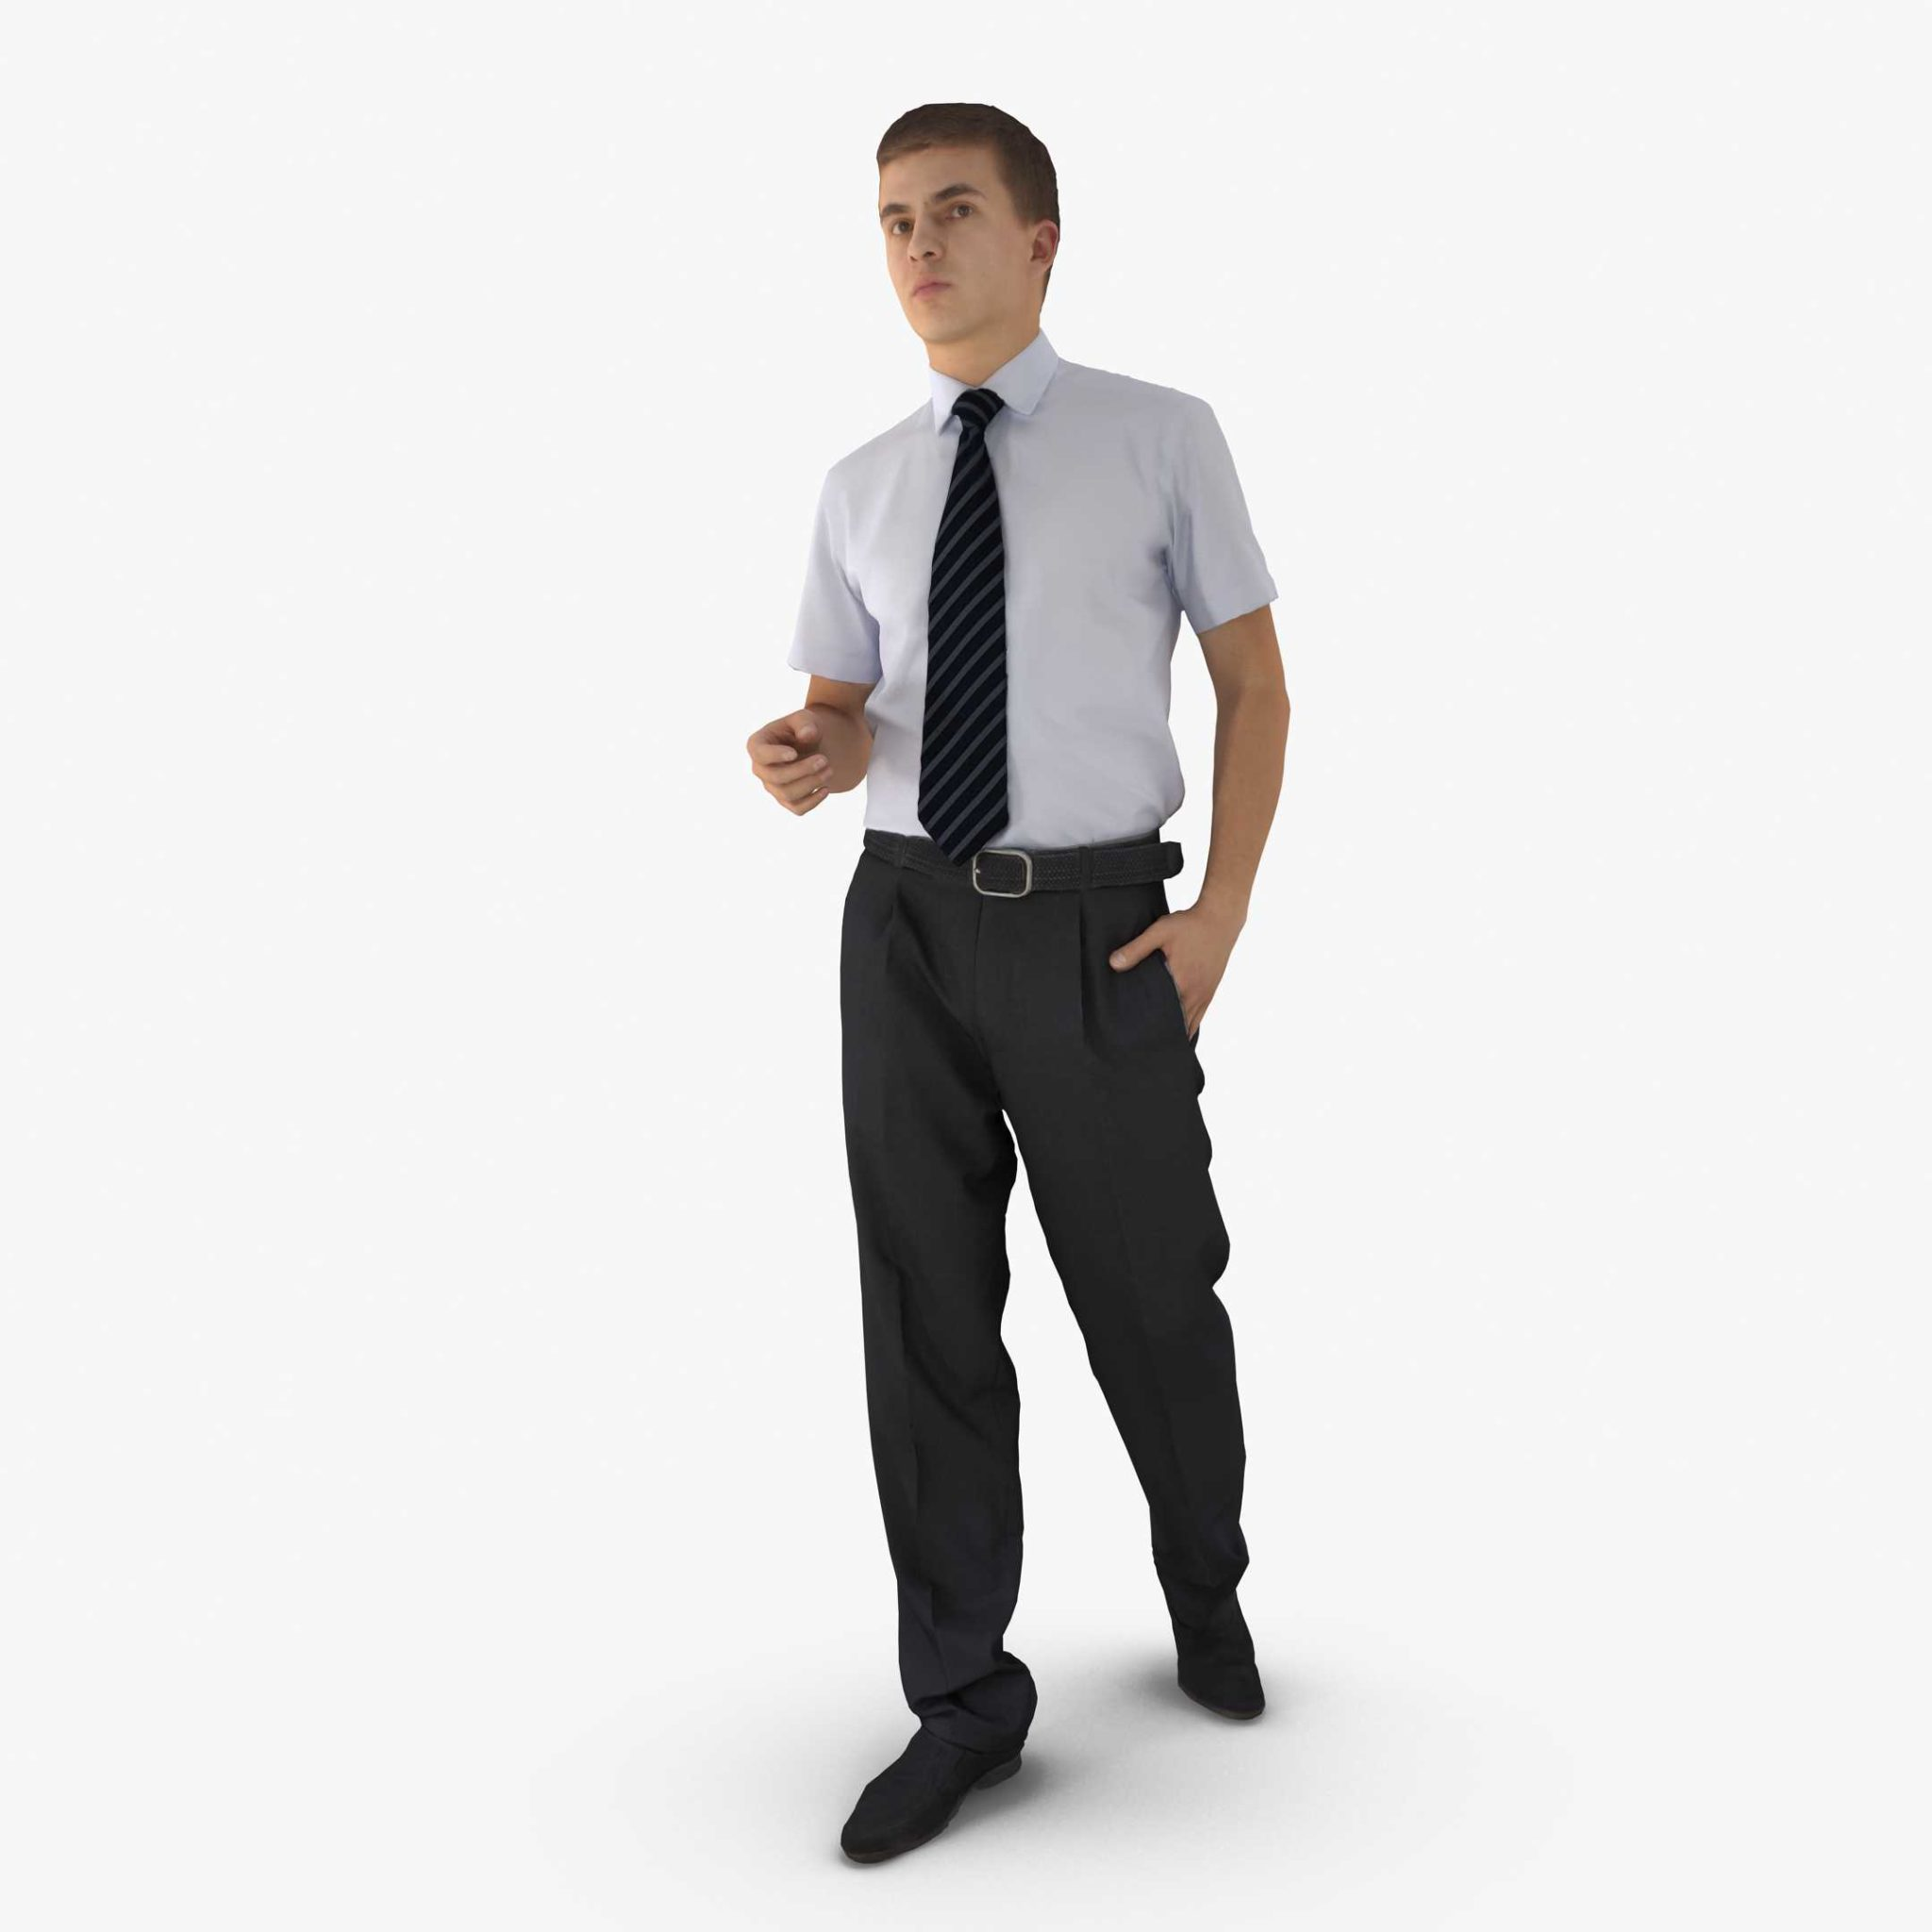 Businessman Walking 3D Model | 3DTree Scanning Studio